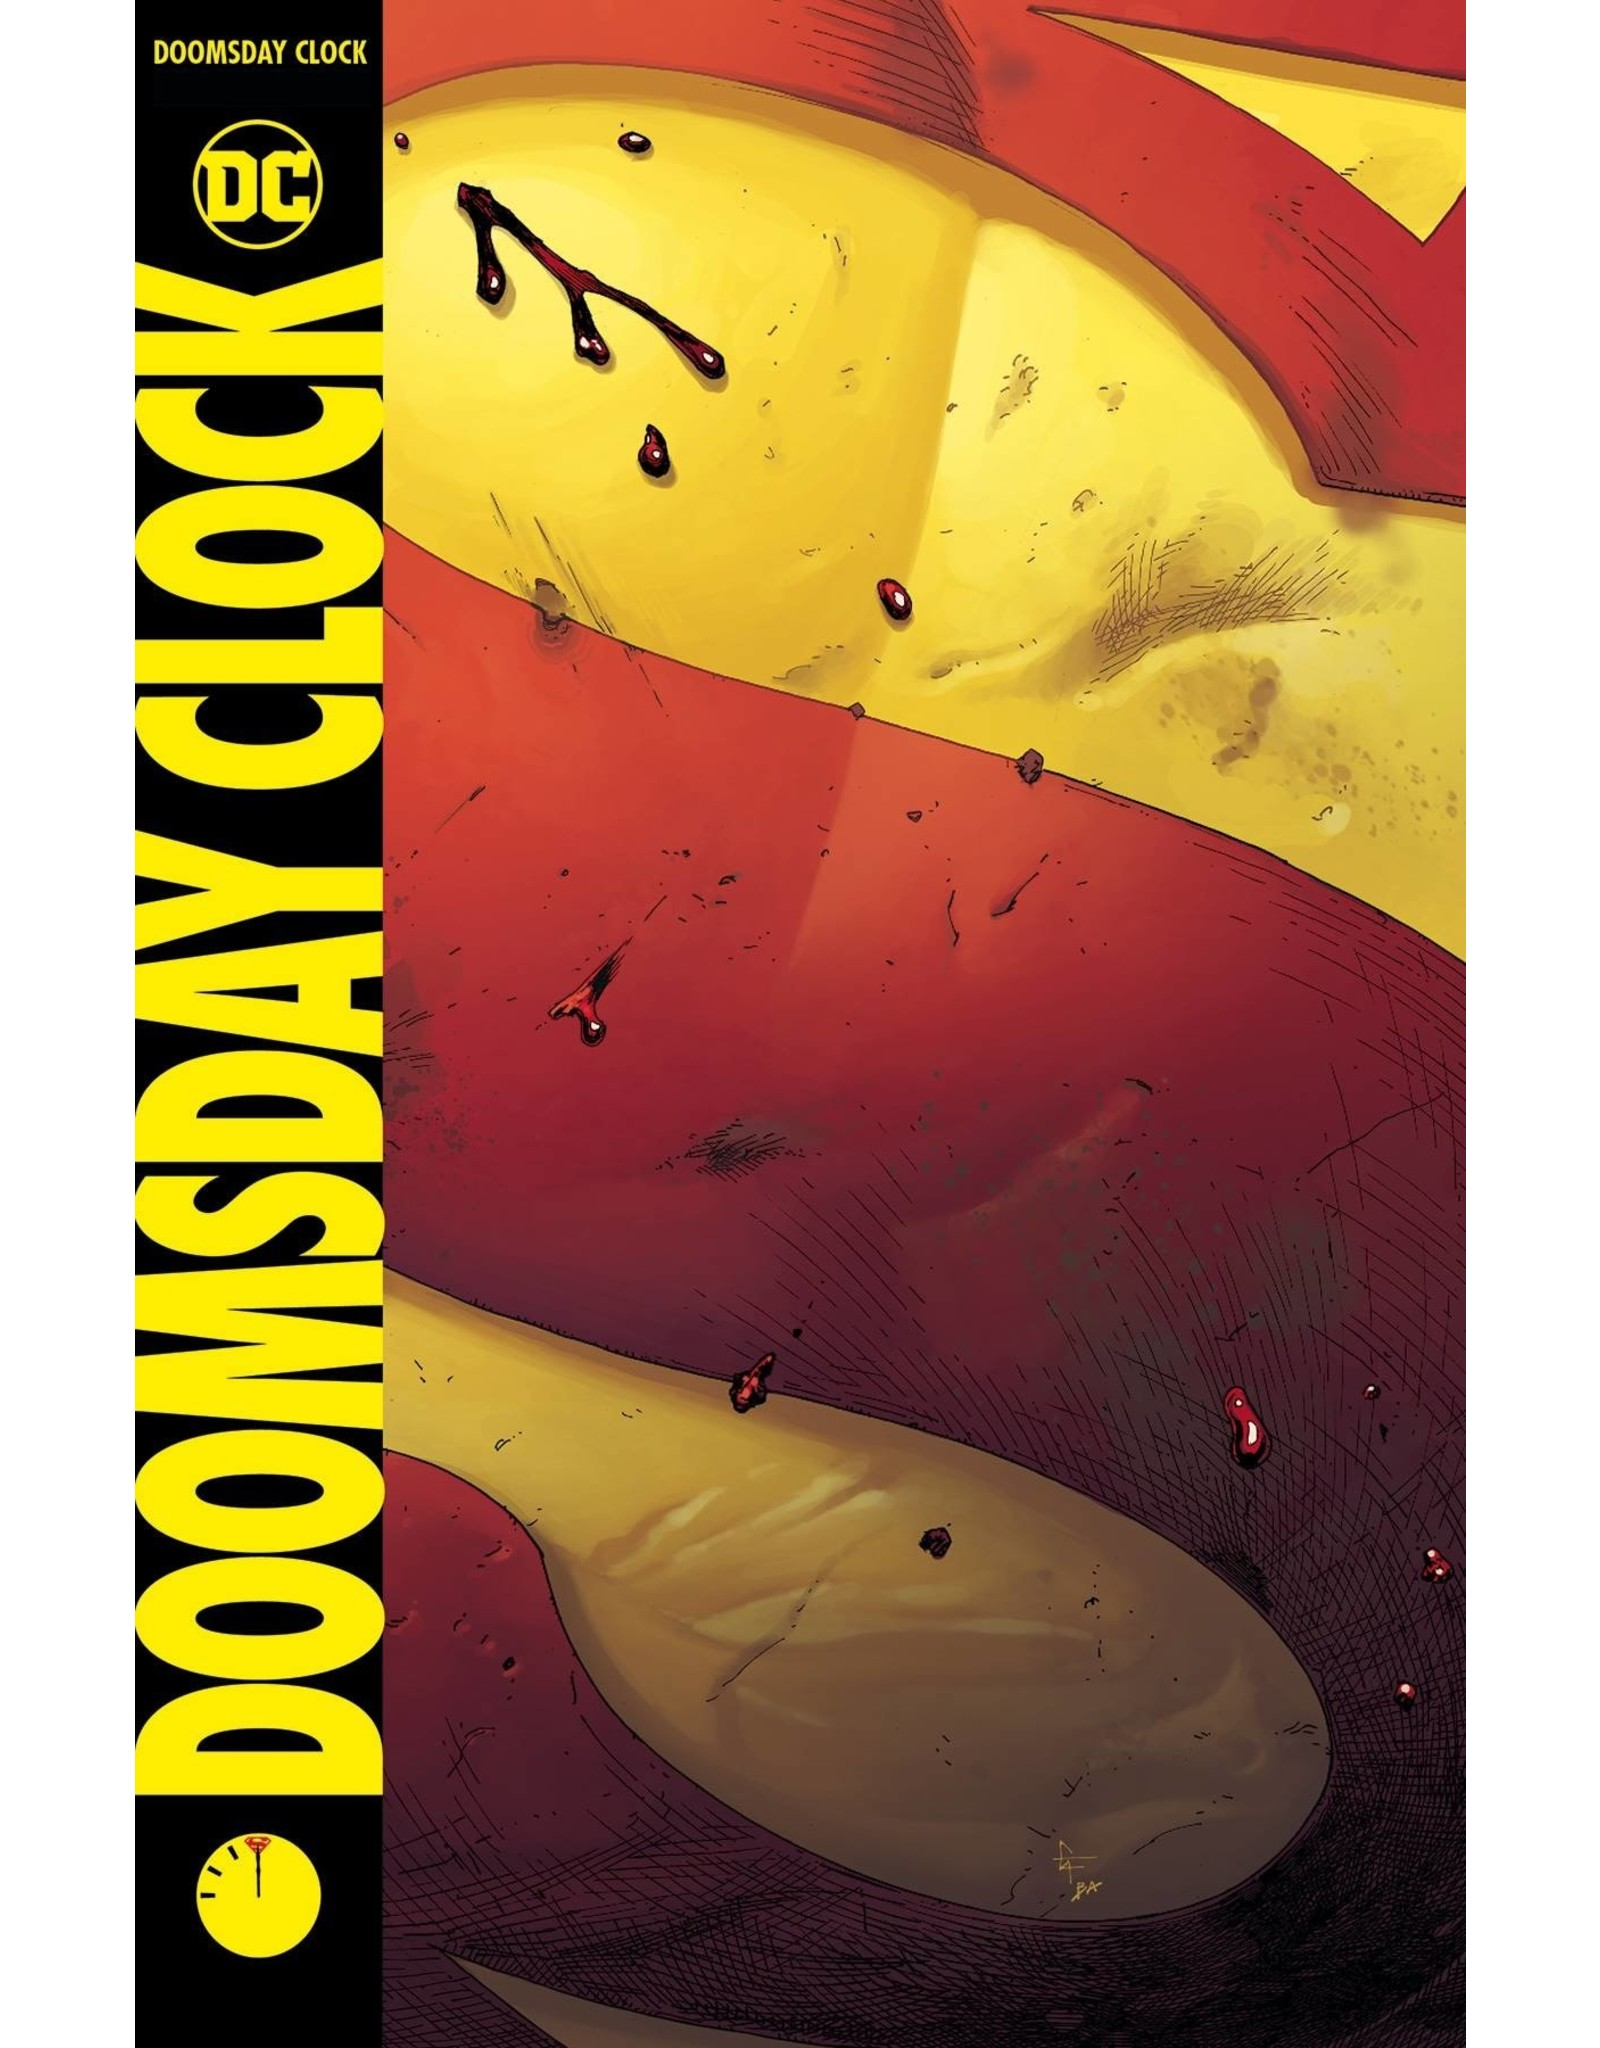 DC COMICS DOOMSDAY CLOCK THE COMPLETE COLLECTION TP